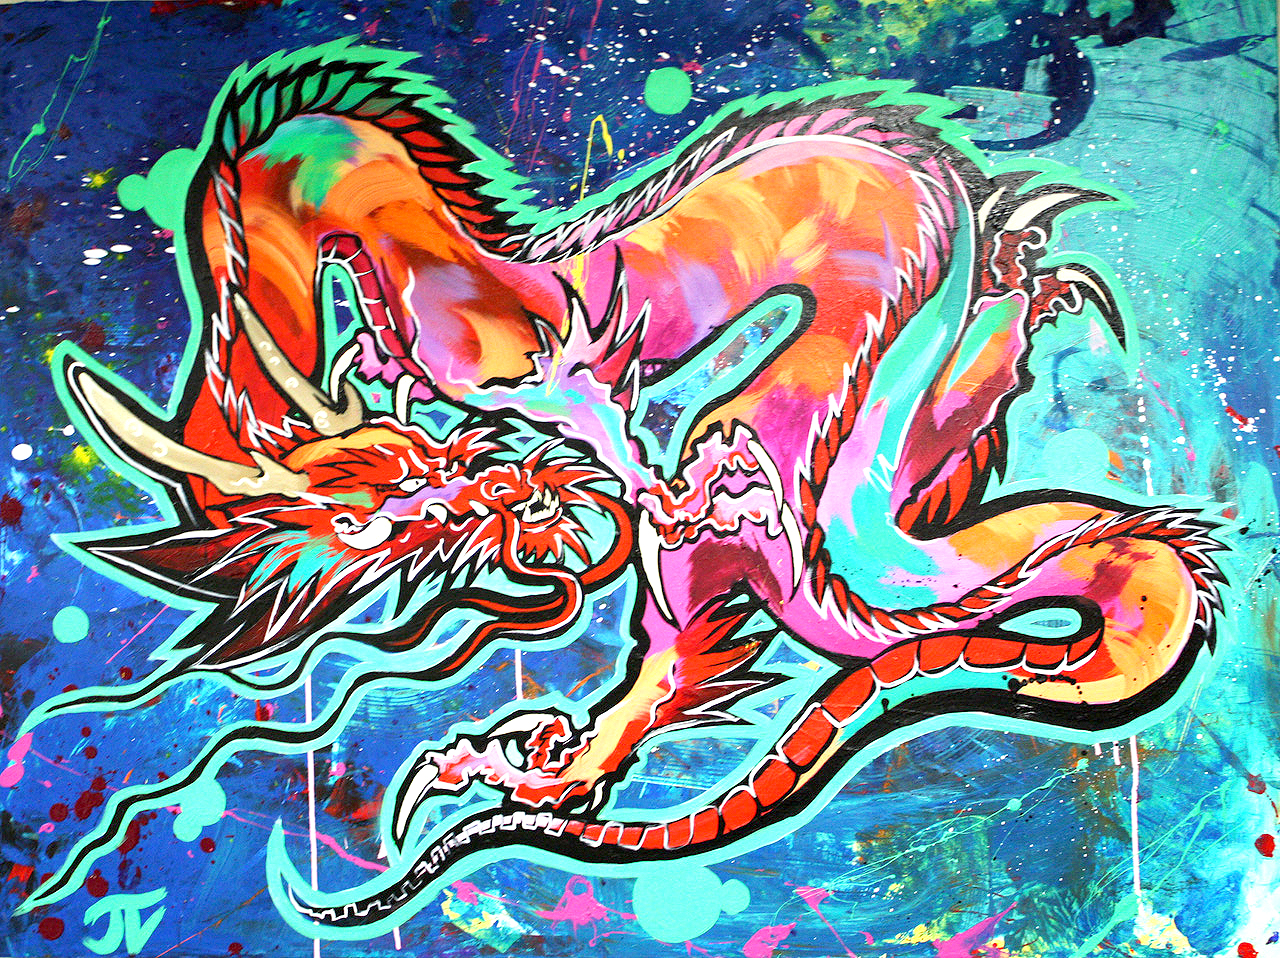 chineese dragon pop culture design painting